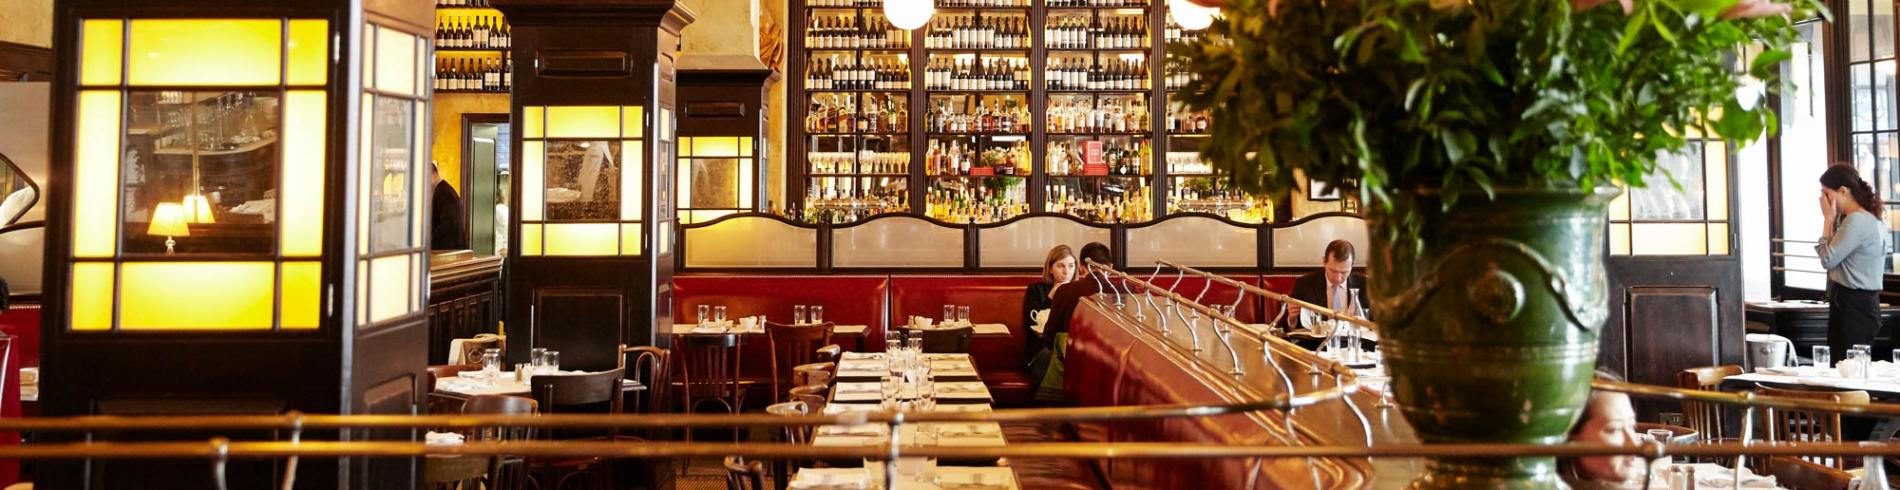 The interior of Balthazar in London